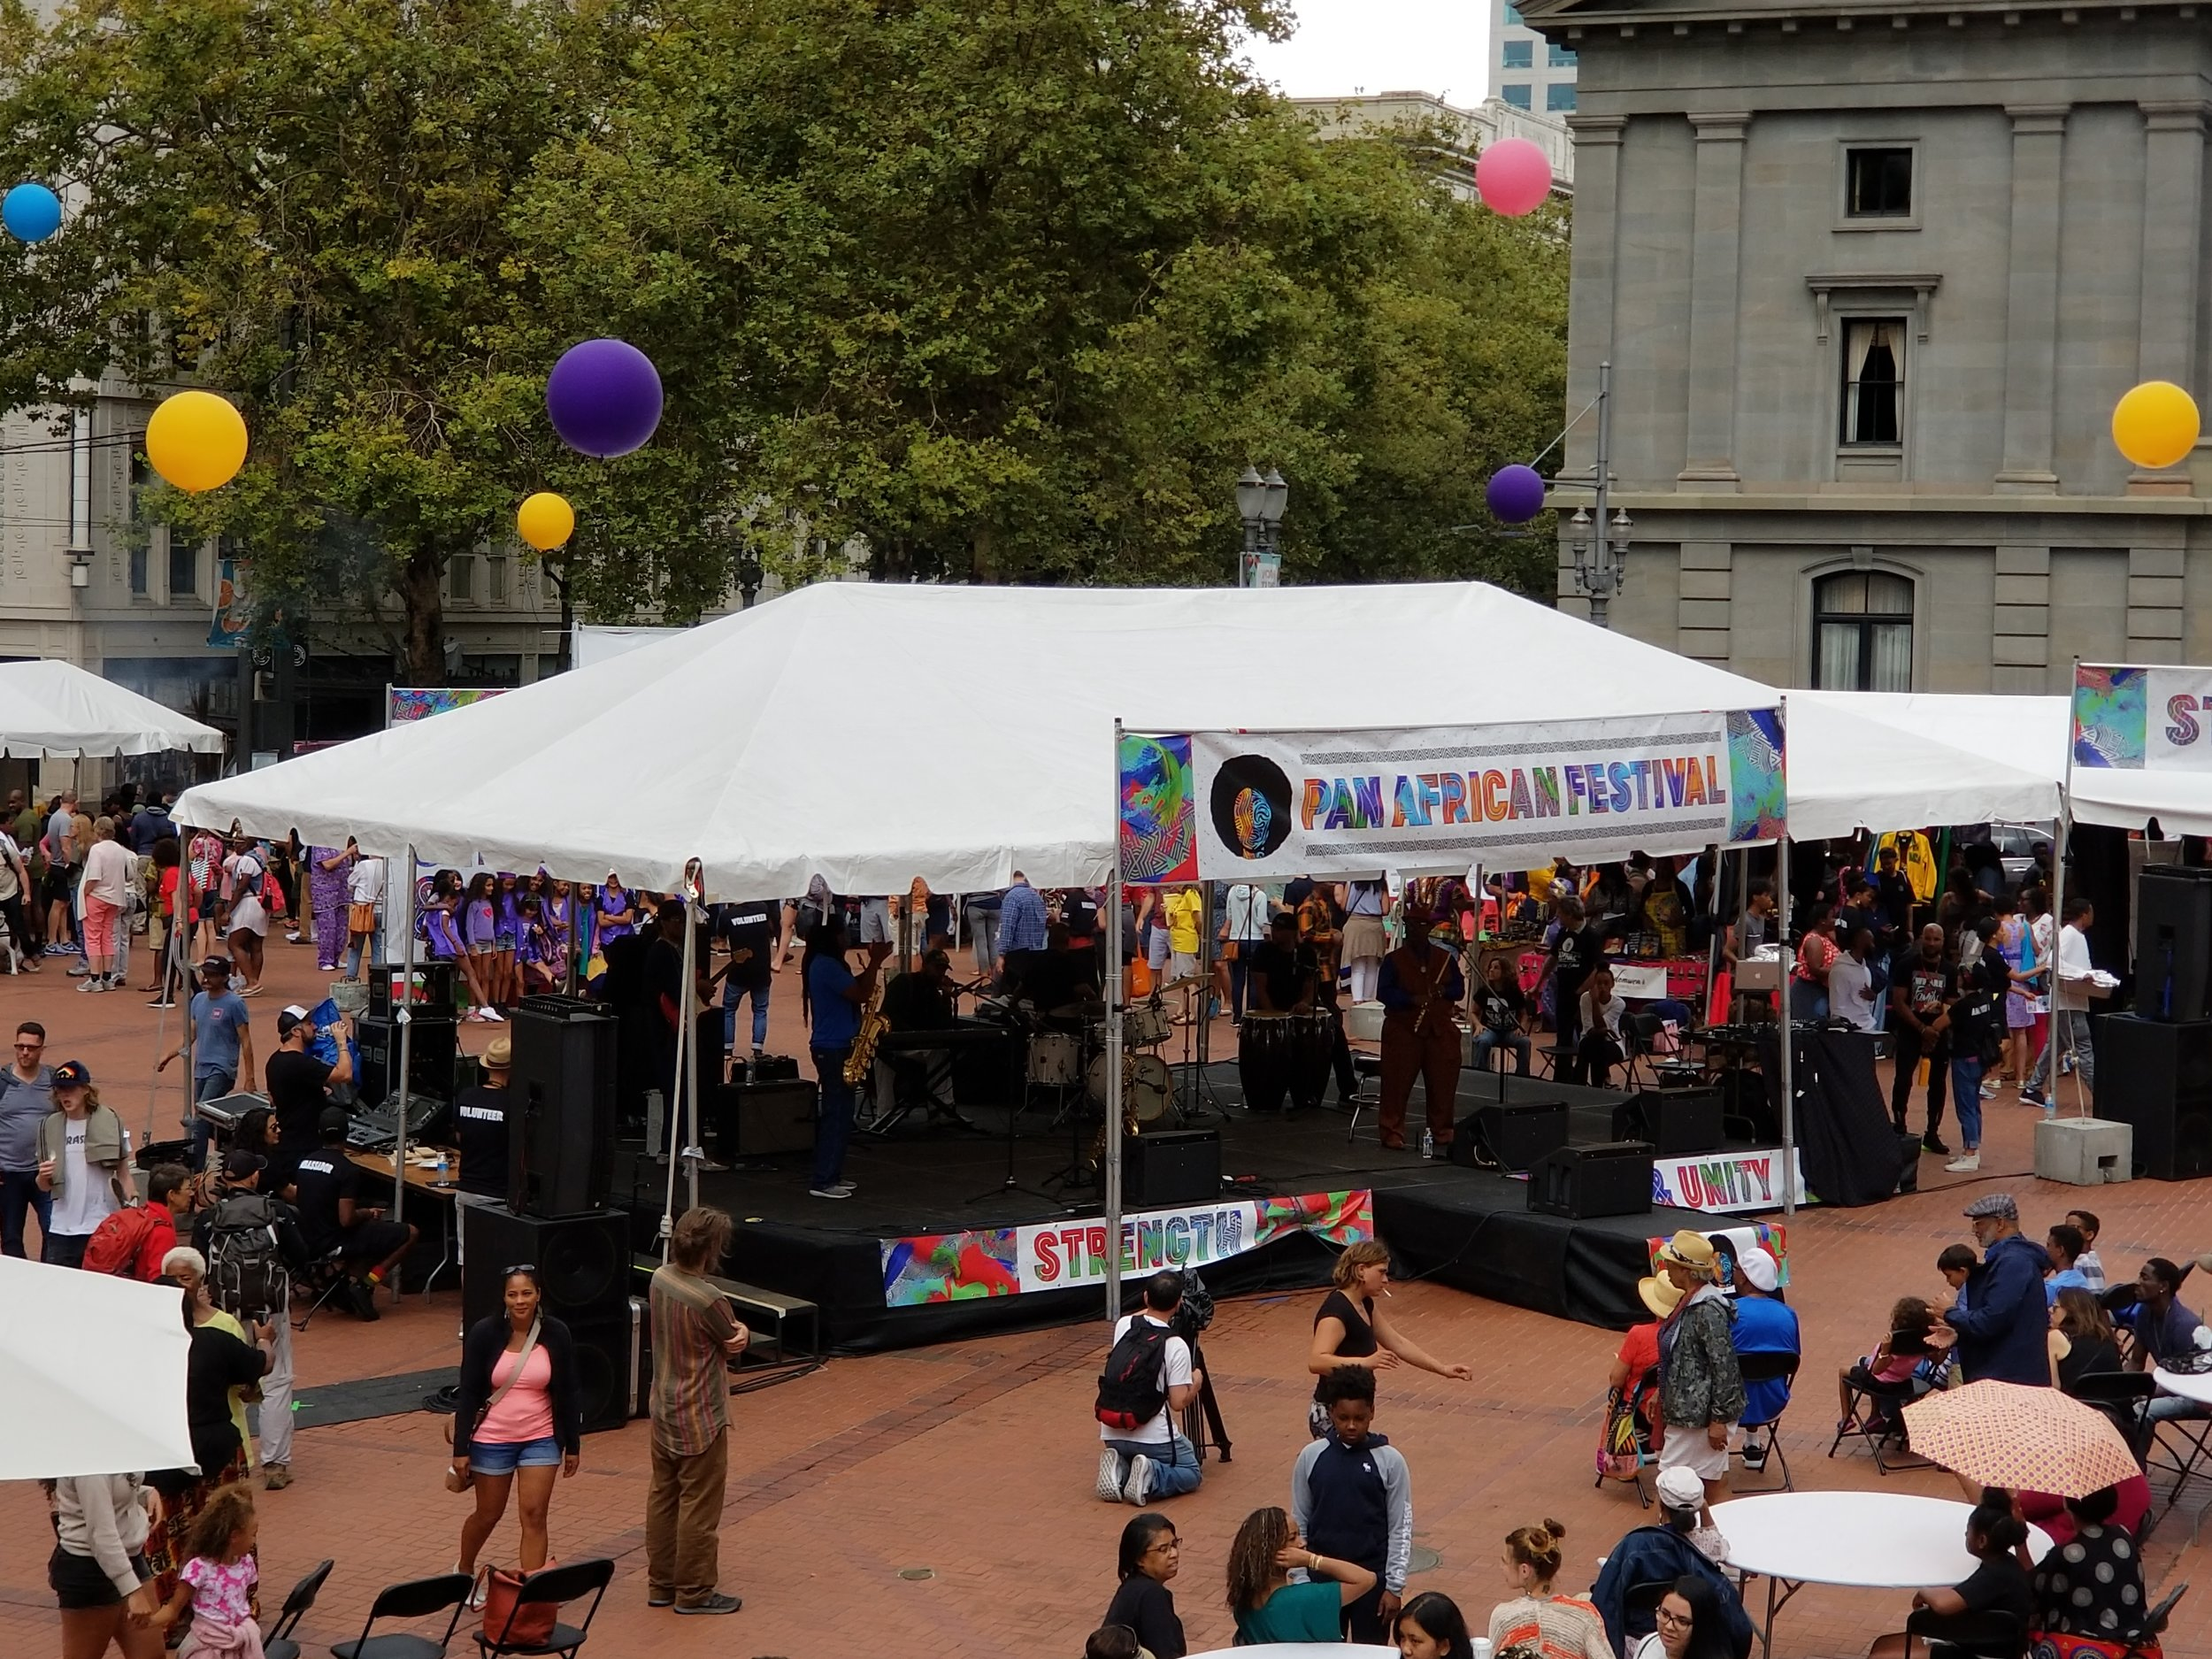 Pan African Festival - August 11, 2018 at Pioneer Courthouse Square. Click here for photos.